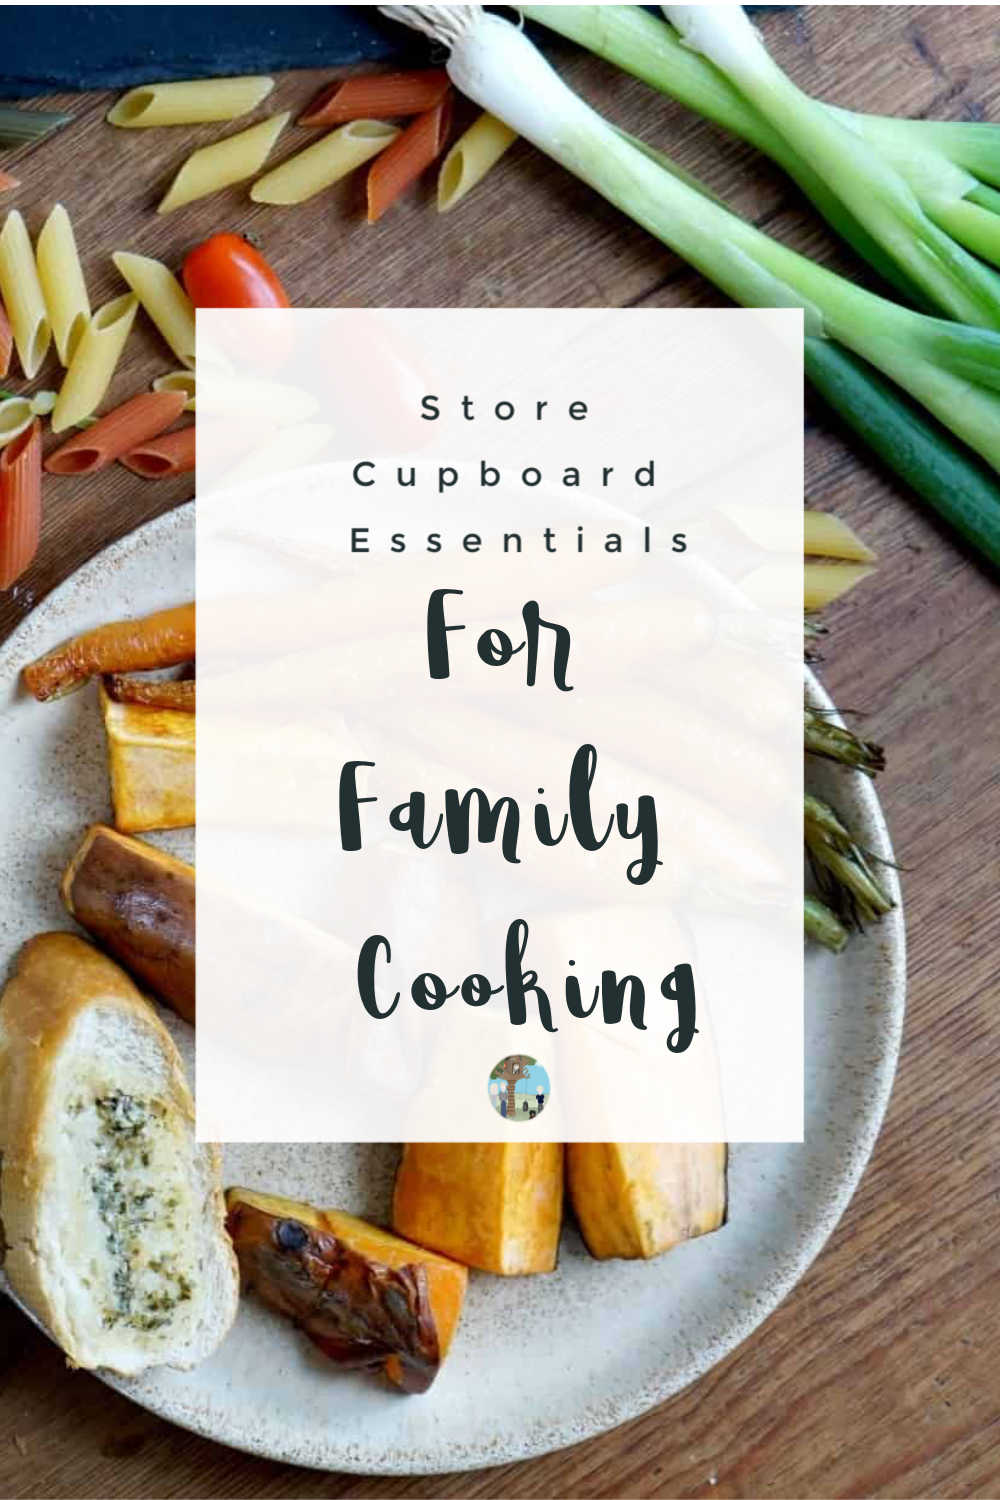 Store cupboard essentials for affordable family cooking